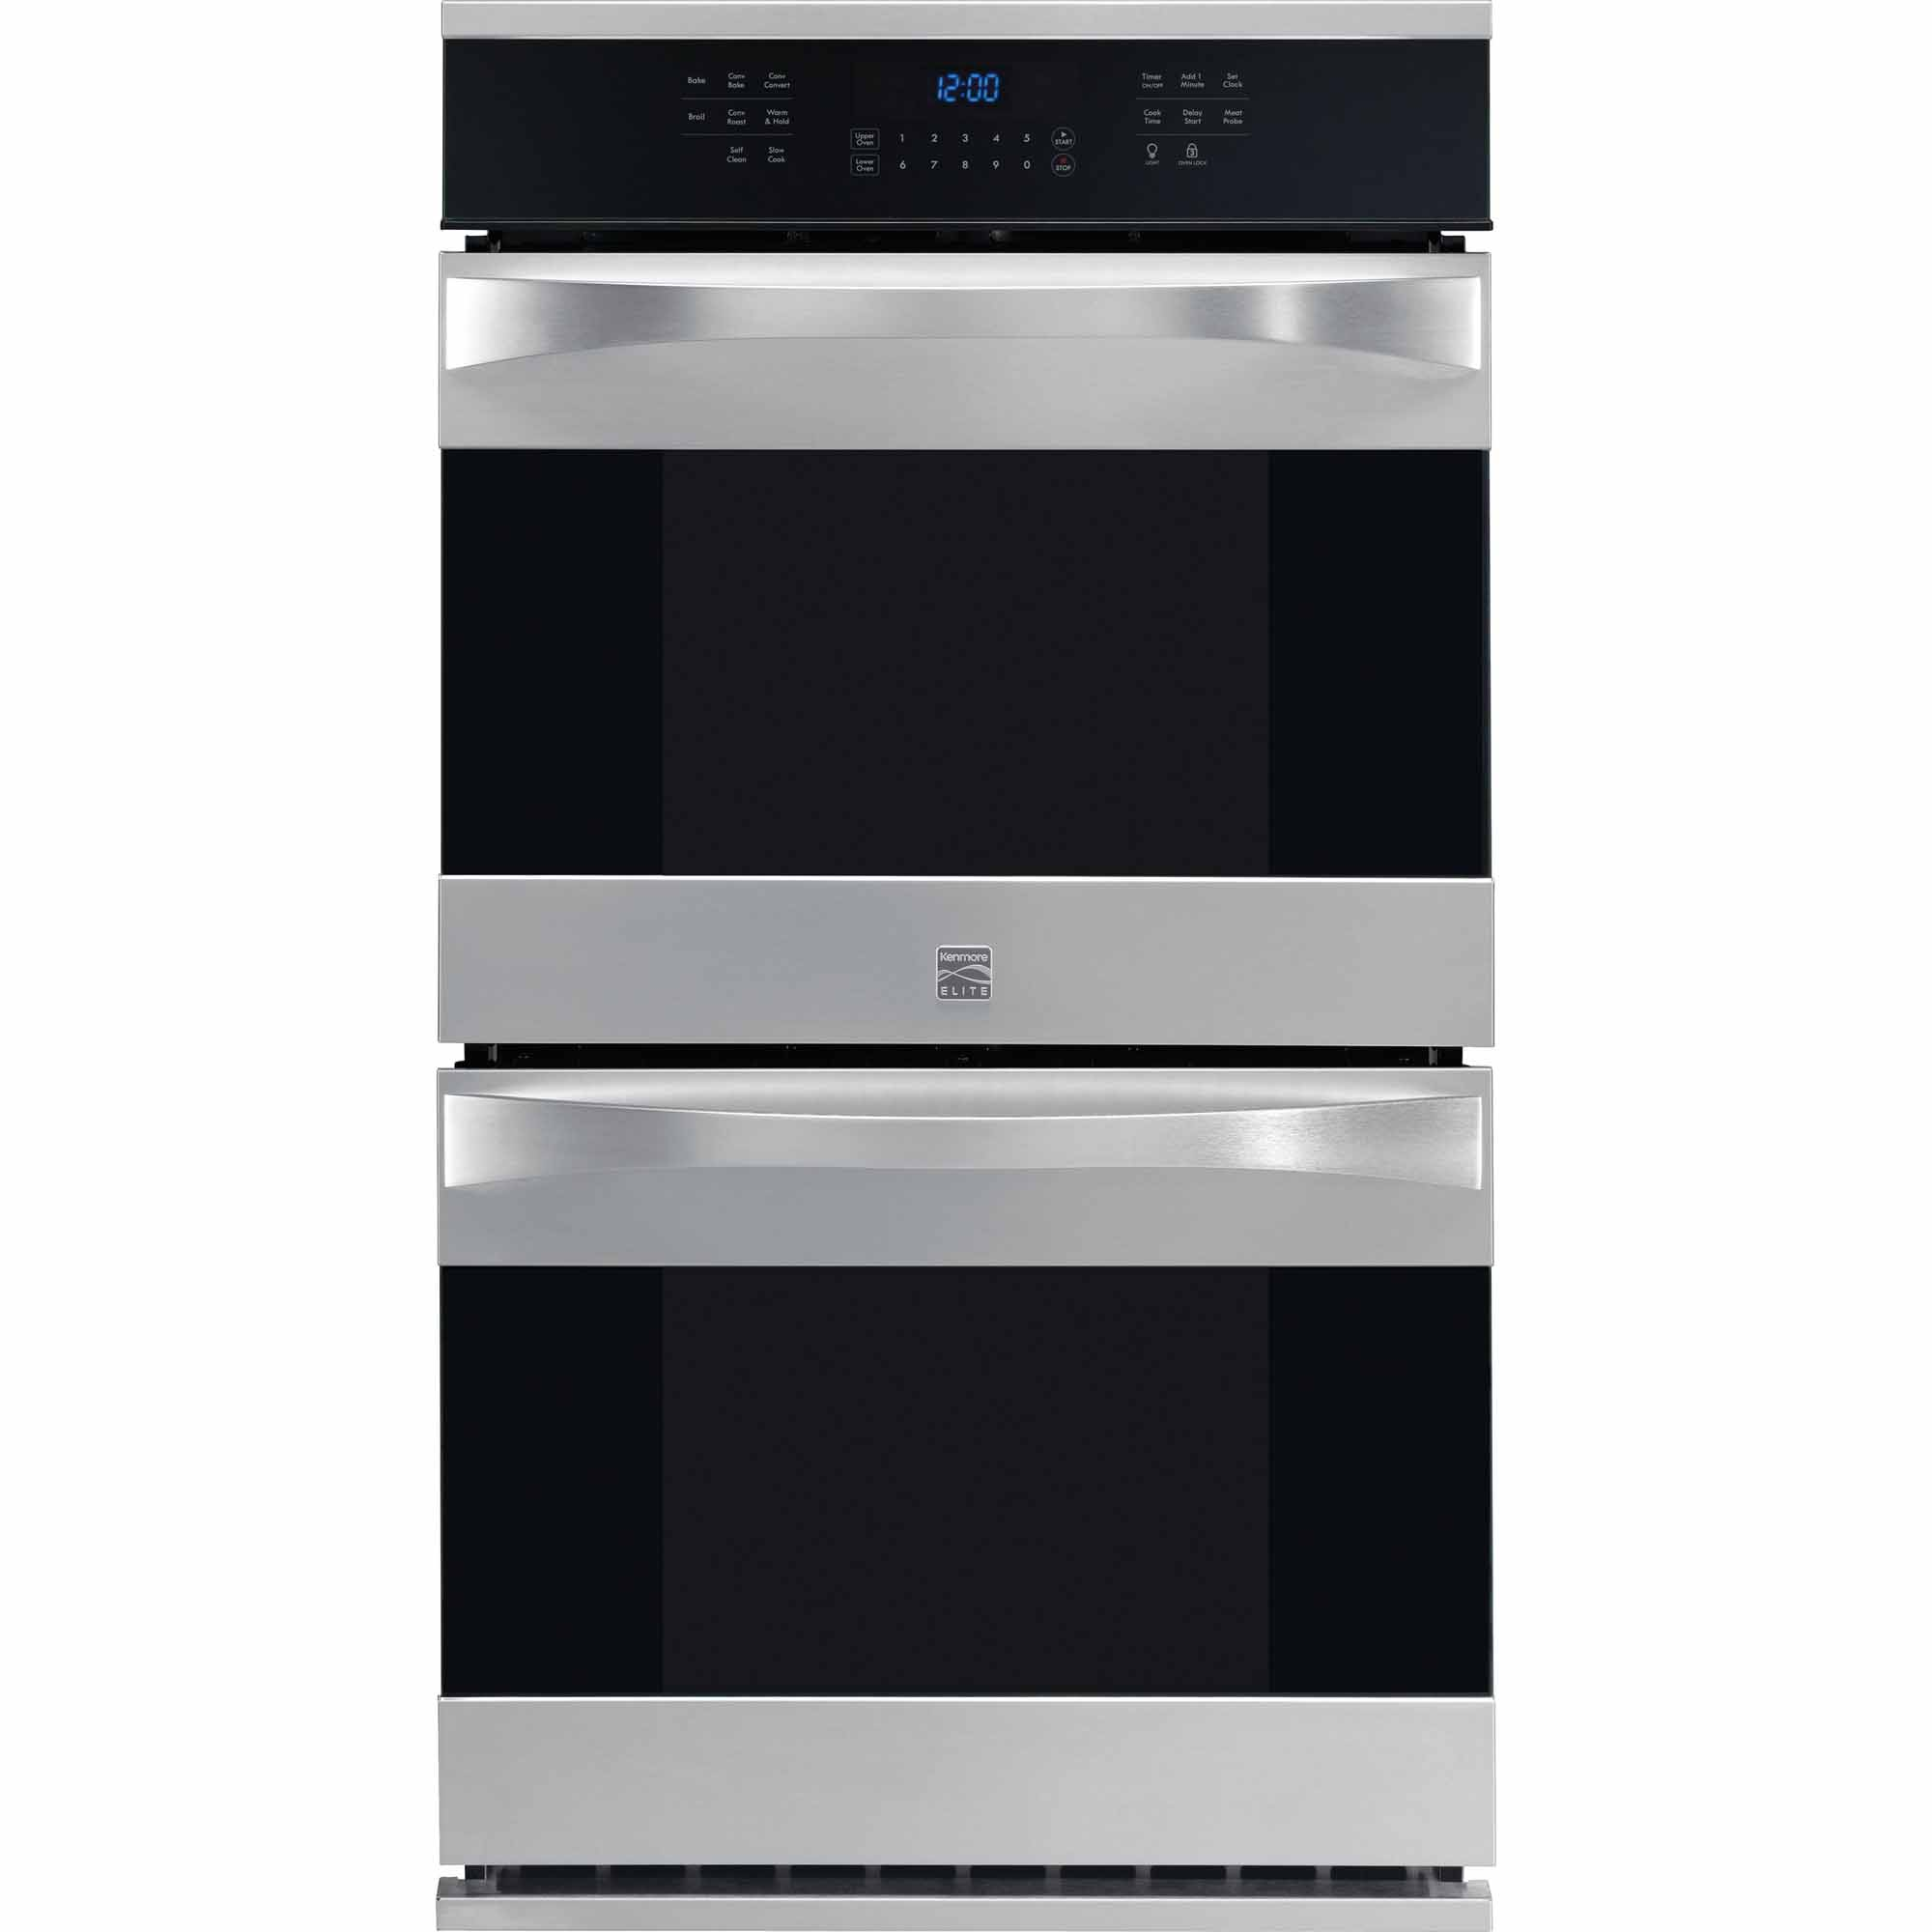 48443-27-Electric-Double-Wall-Oven-w-True-Convection%E2%84%A2-Stainless-Steel